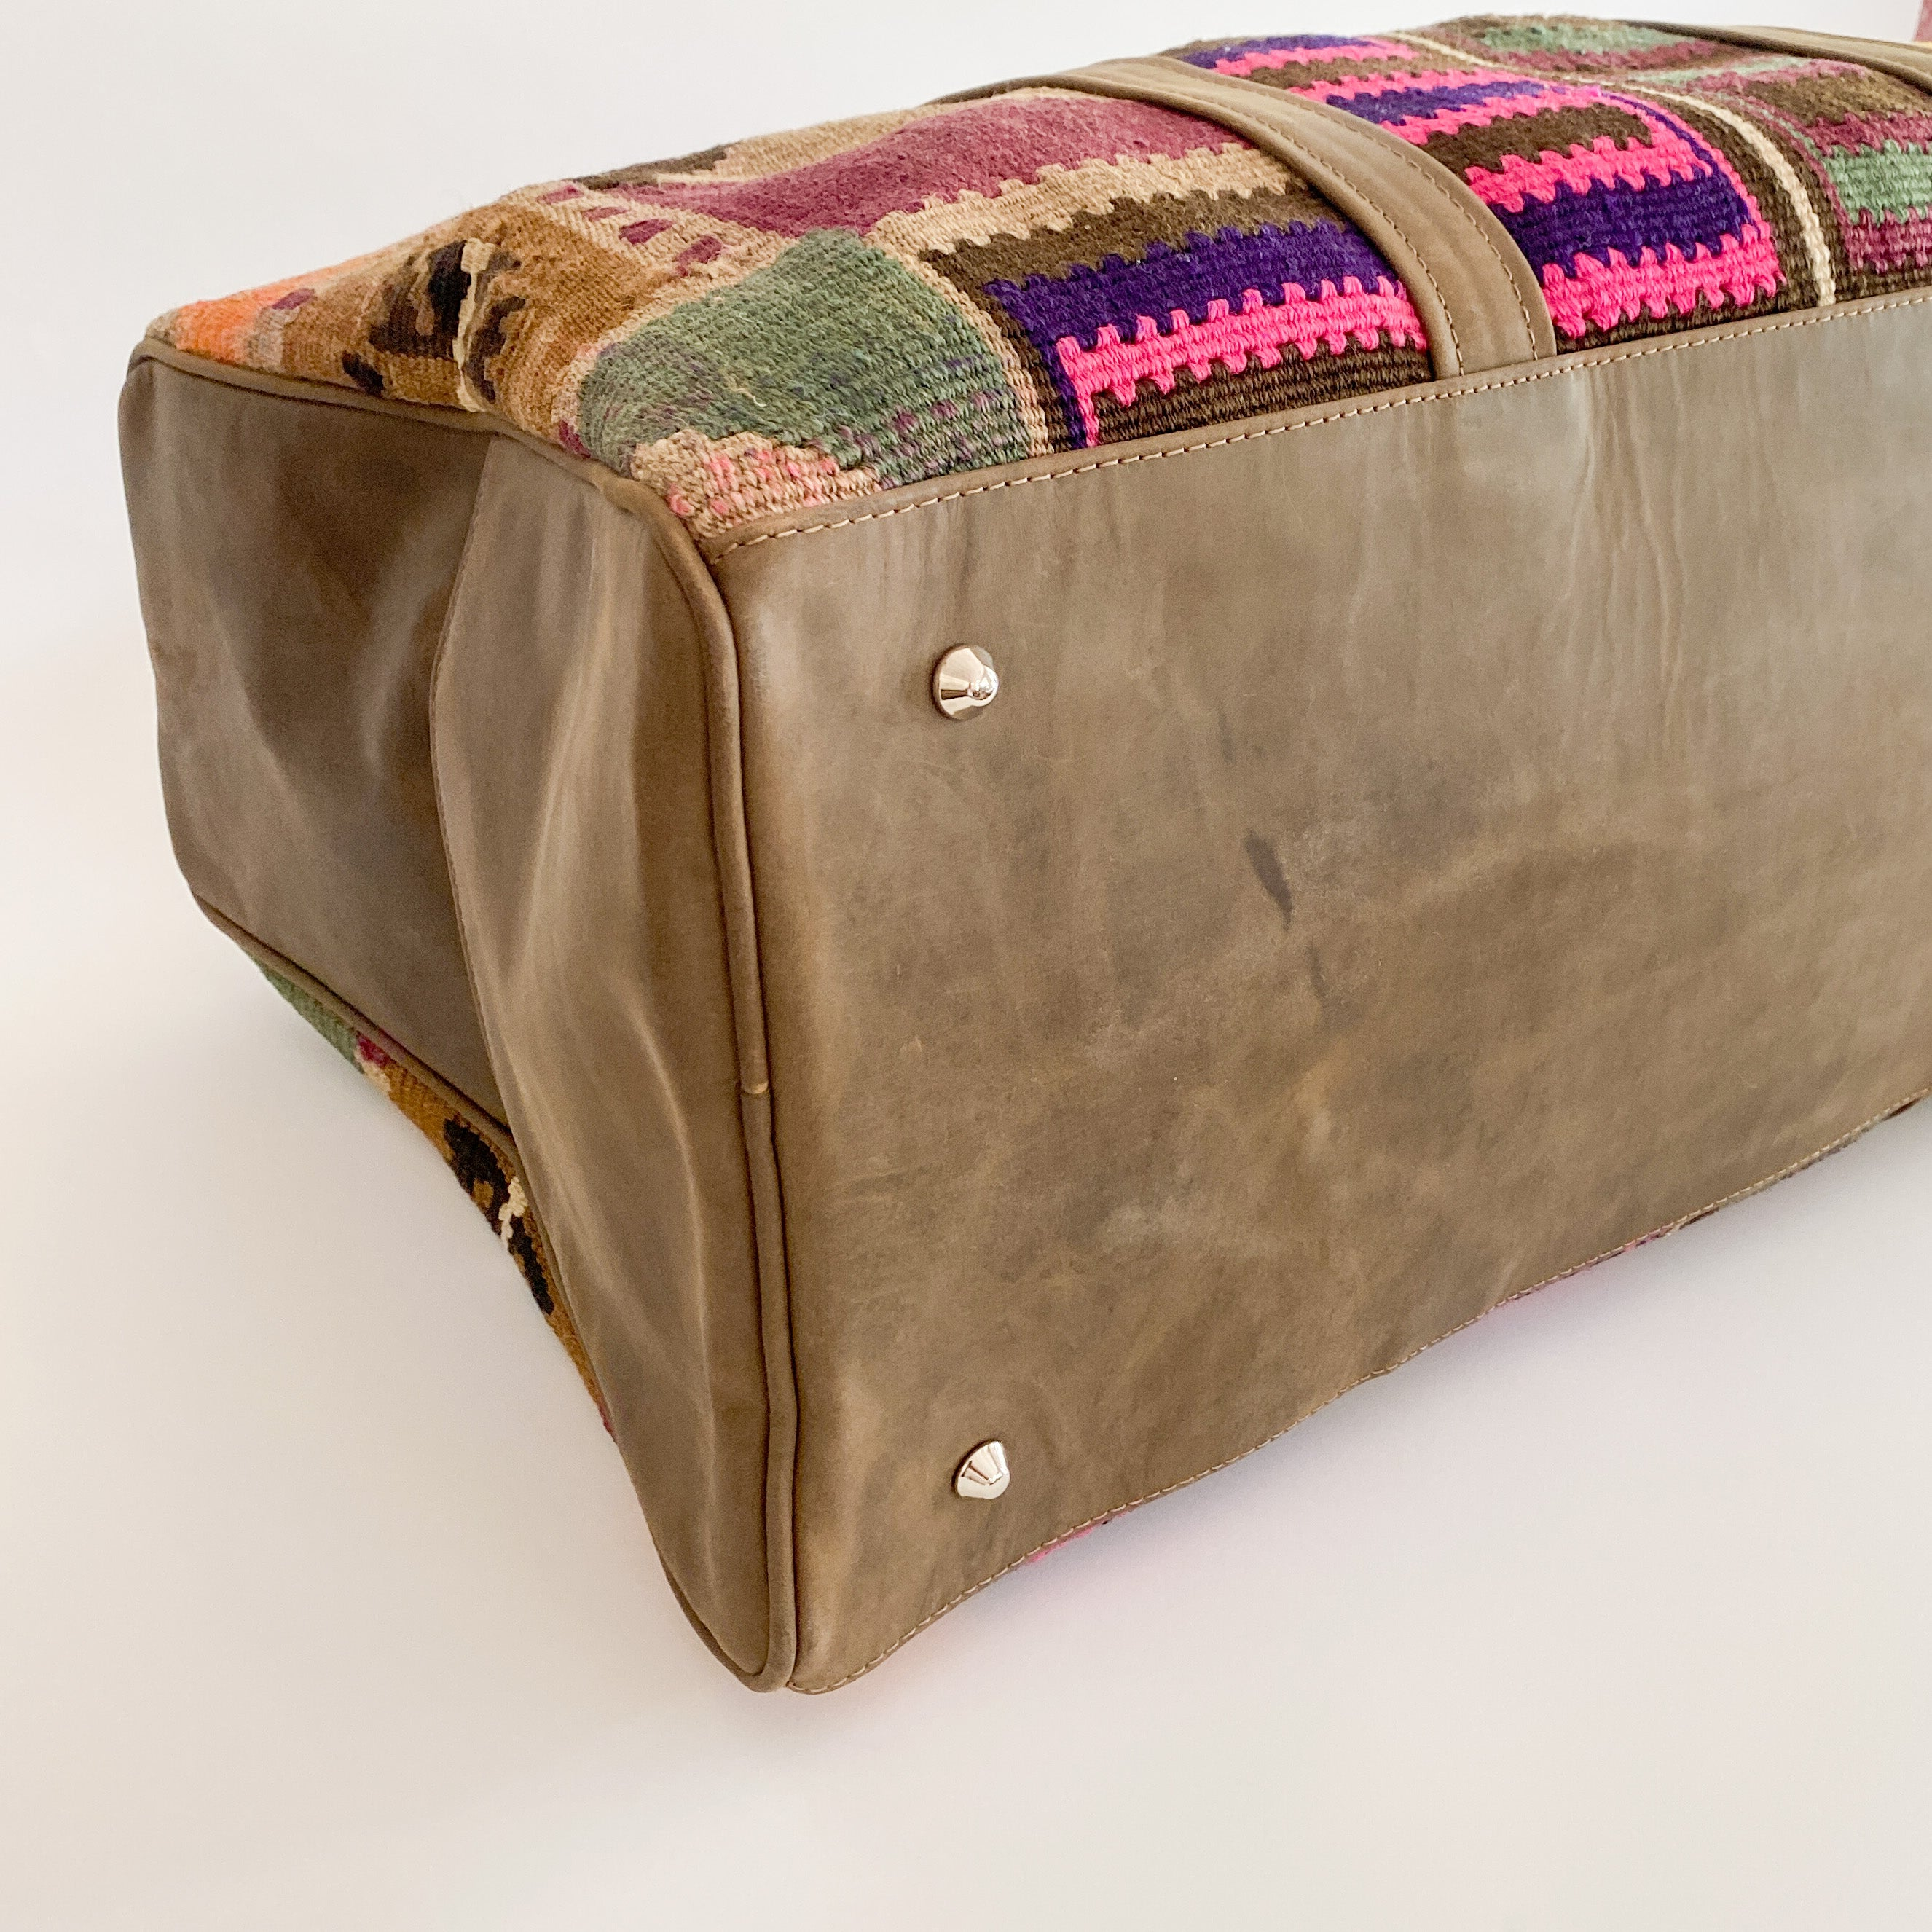 Kilim & Leather Overnight Bag #36 (w/ side pockets)